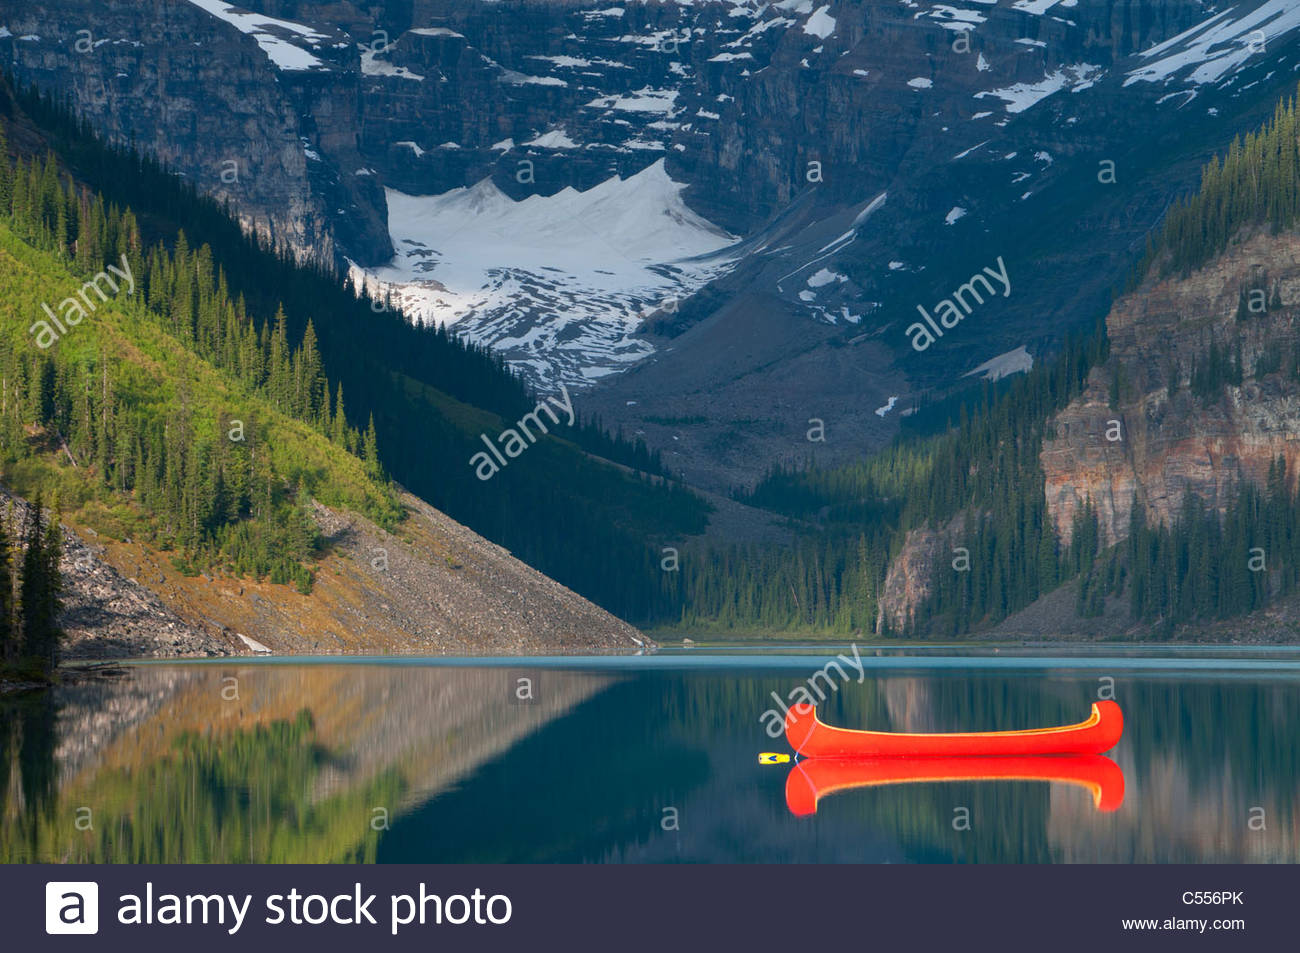 Red canoe in the lake, Lake Louise, Banff National Park, Alberta, Canada Stock Foto